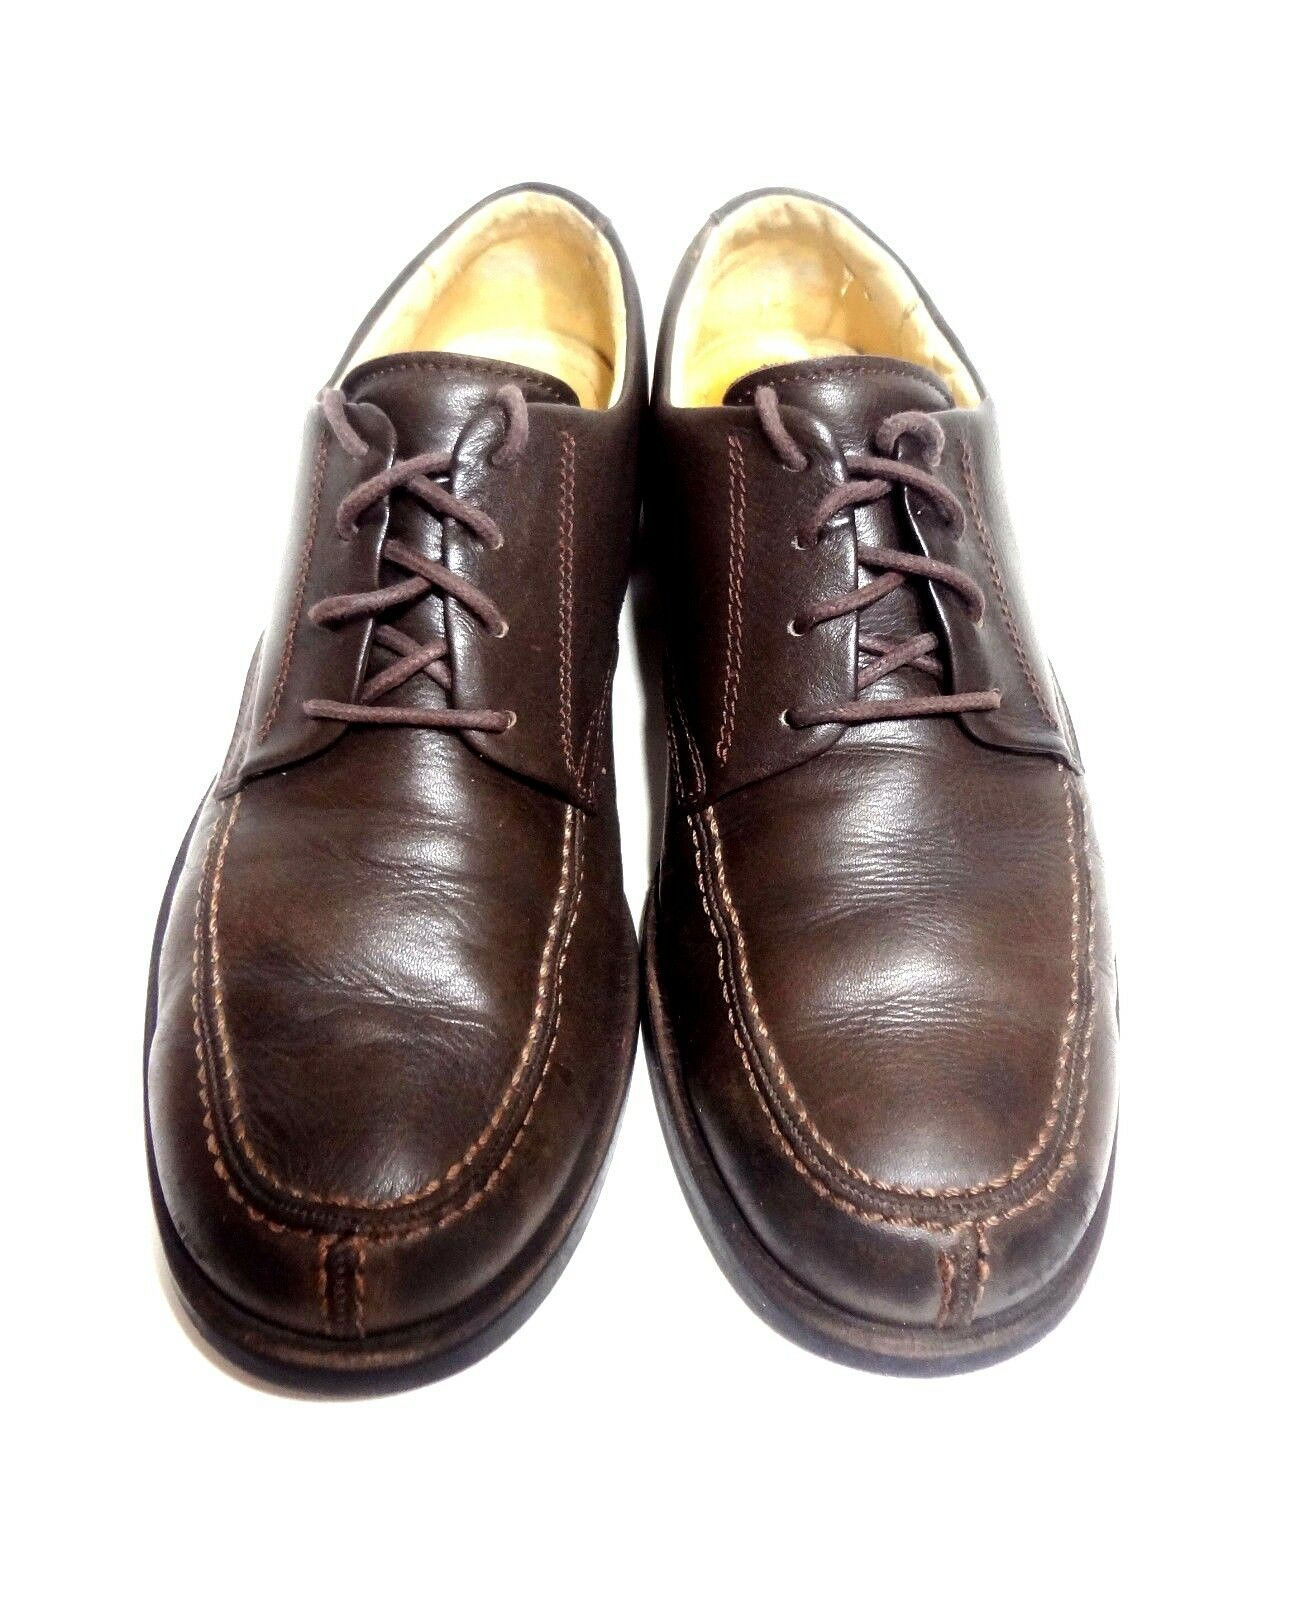 Bostonian Strada Oxfords Casual dress Brown Leather shoes 7 M